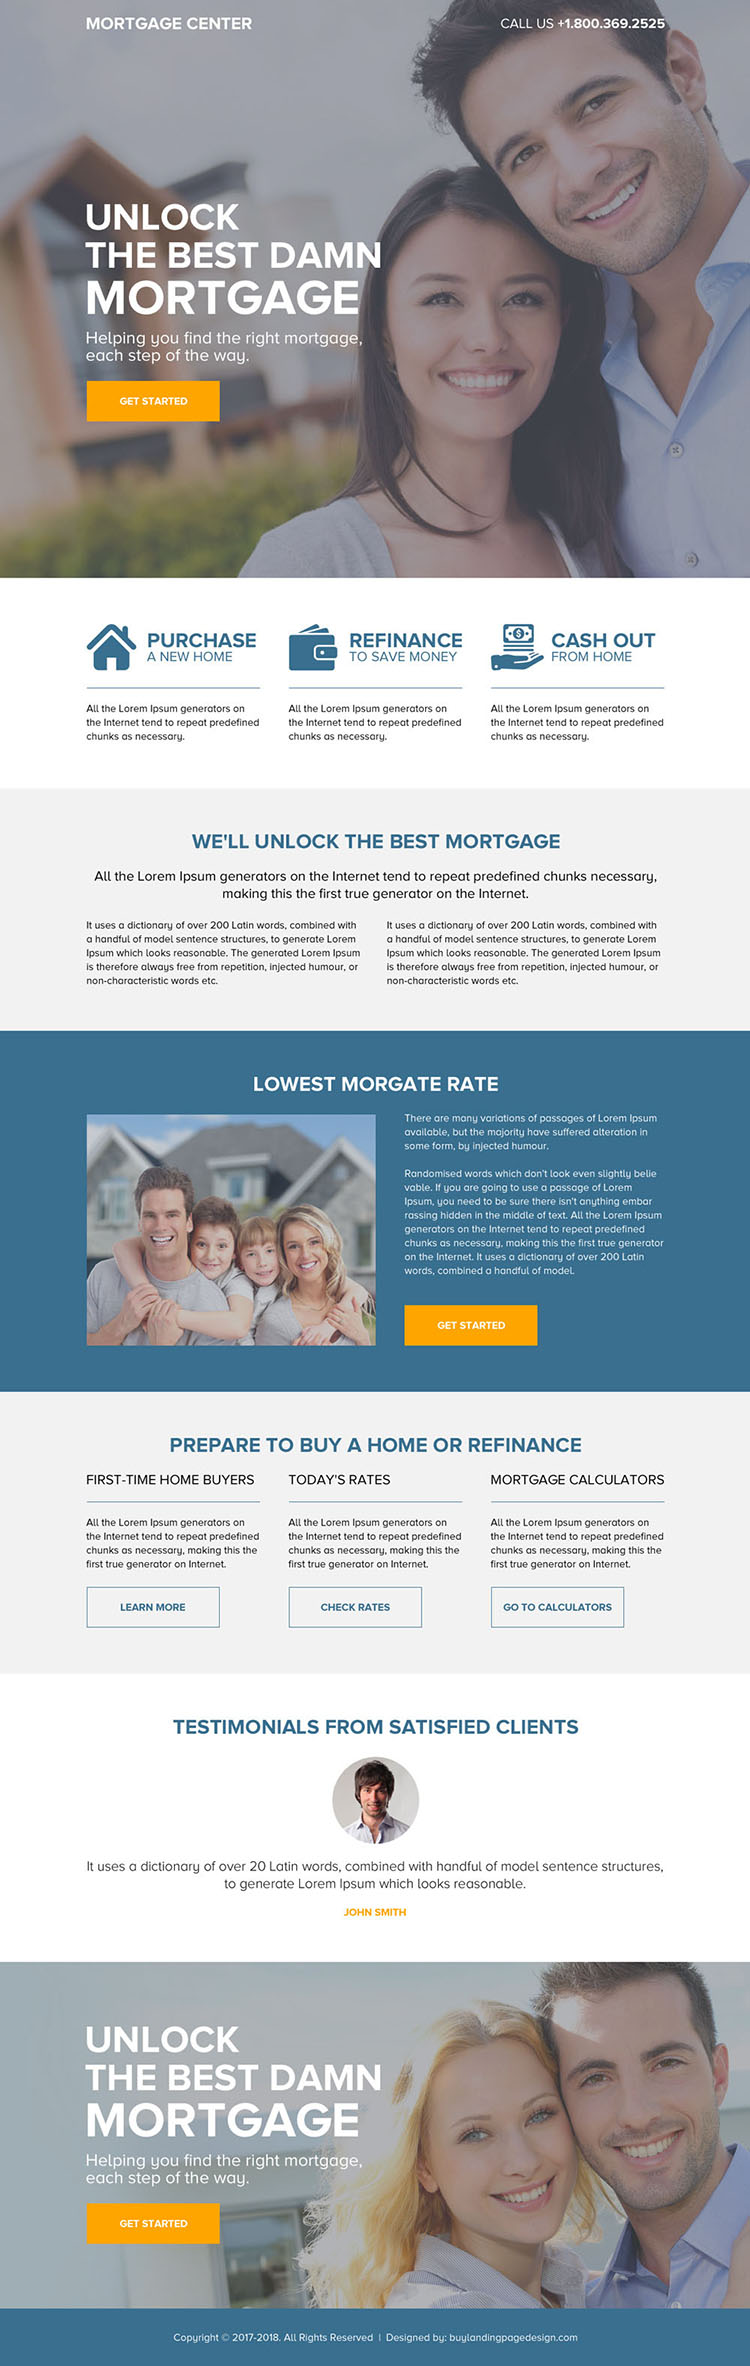 professional mortgage center landing page design